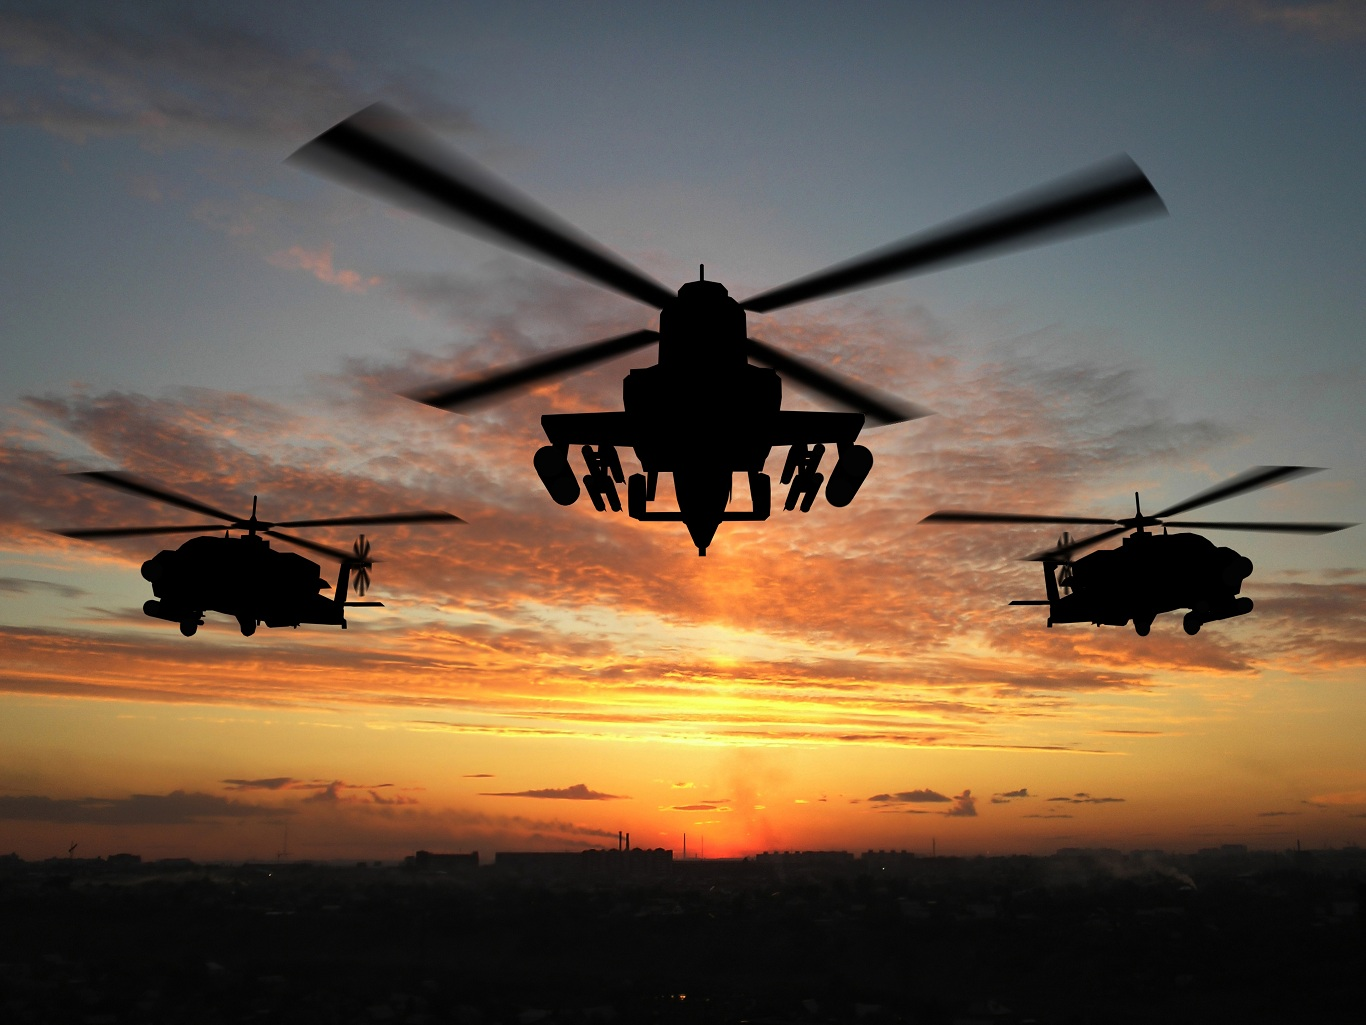 Shutterstock Helicopters at Sunset